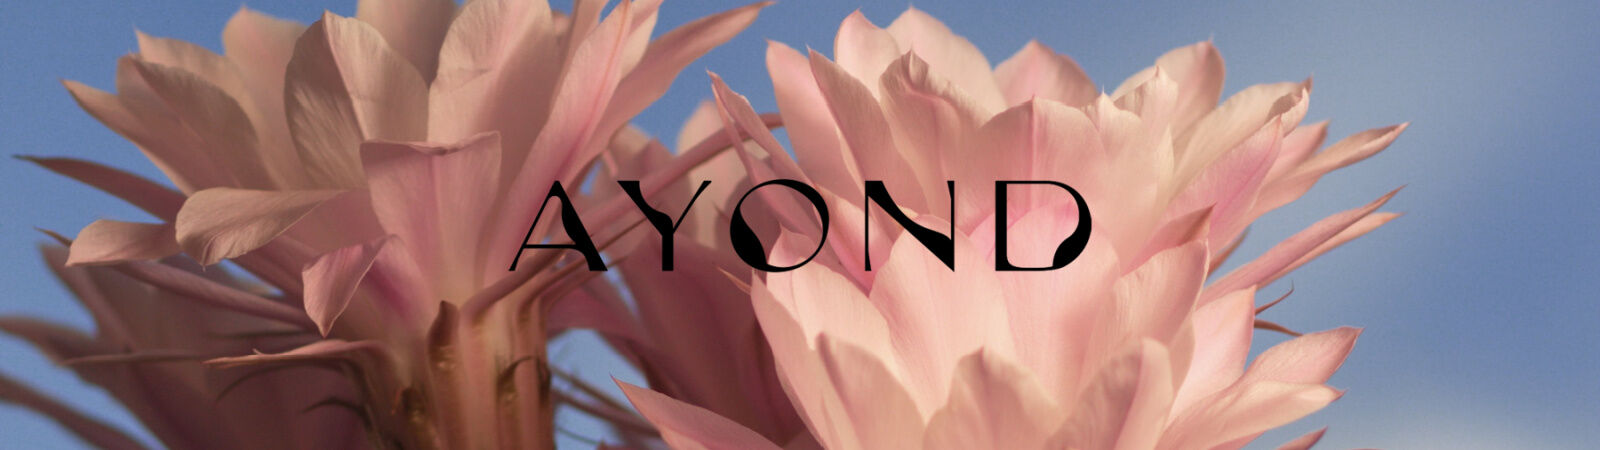 Ayond Skincare | Inspired by the Desert - Available at Sportique.com